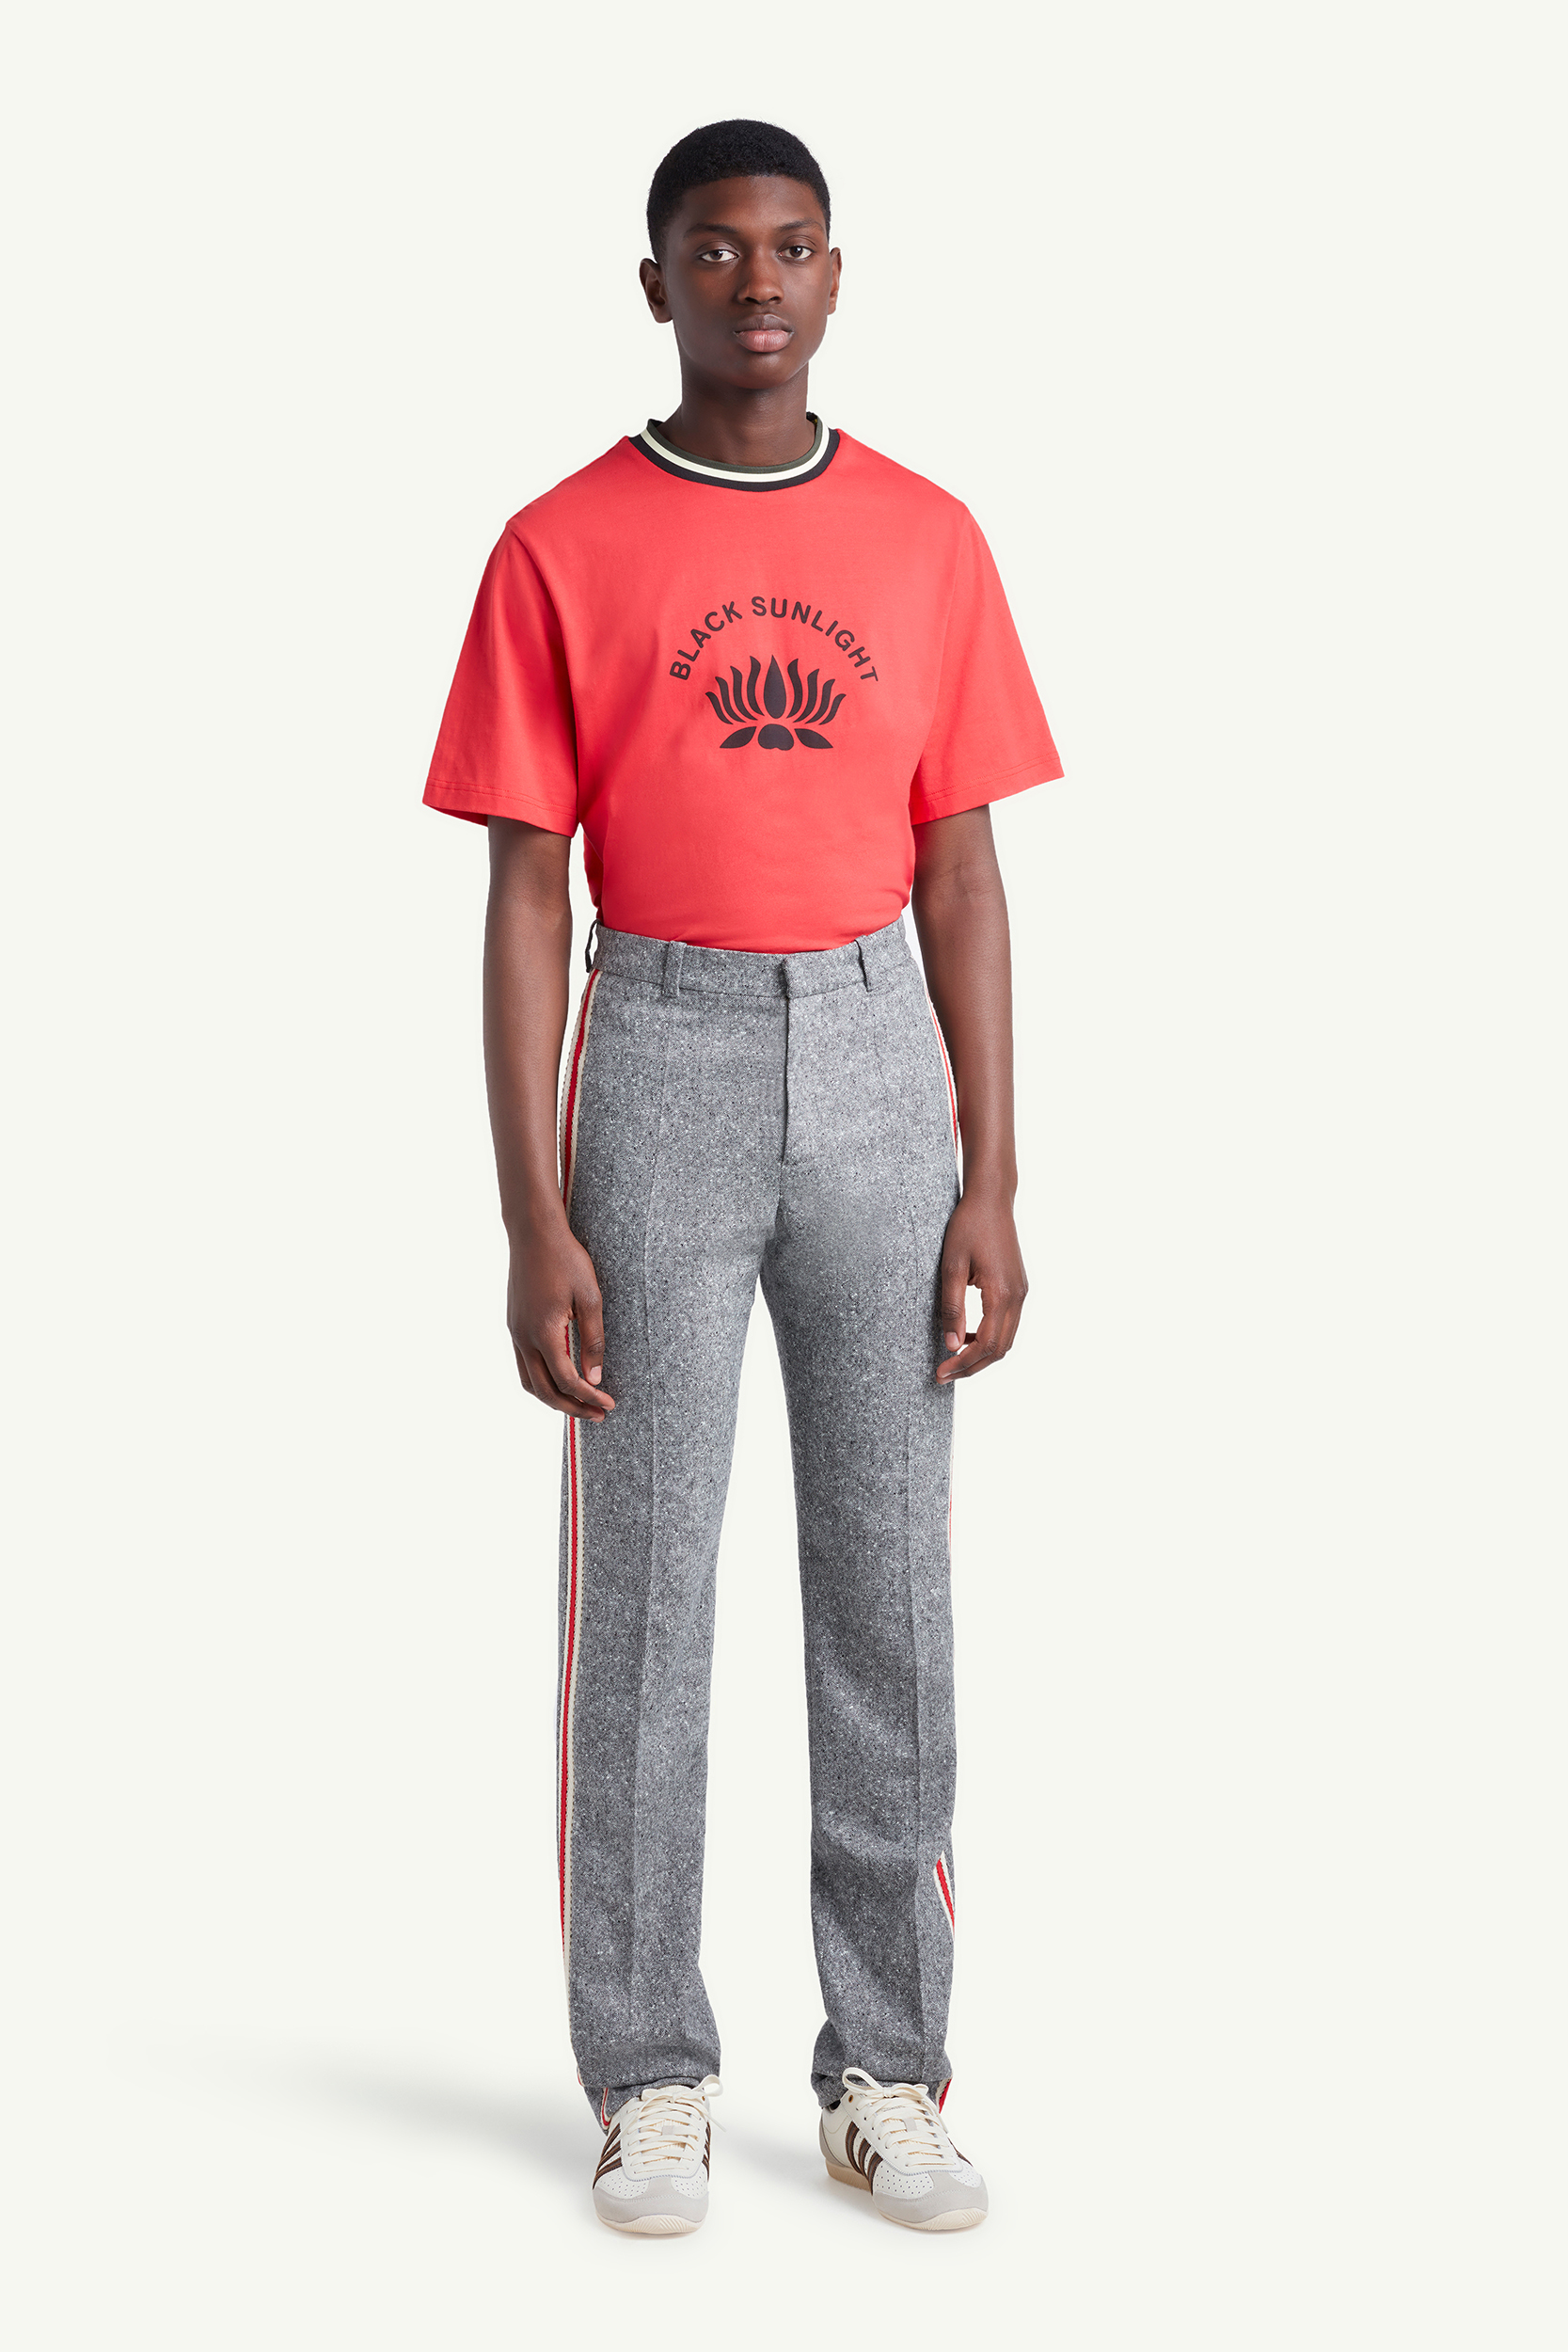 Menswear model wearing Wales Bonner red shirt with grey joggers and white trainers | LRP